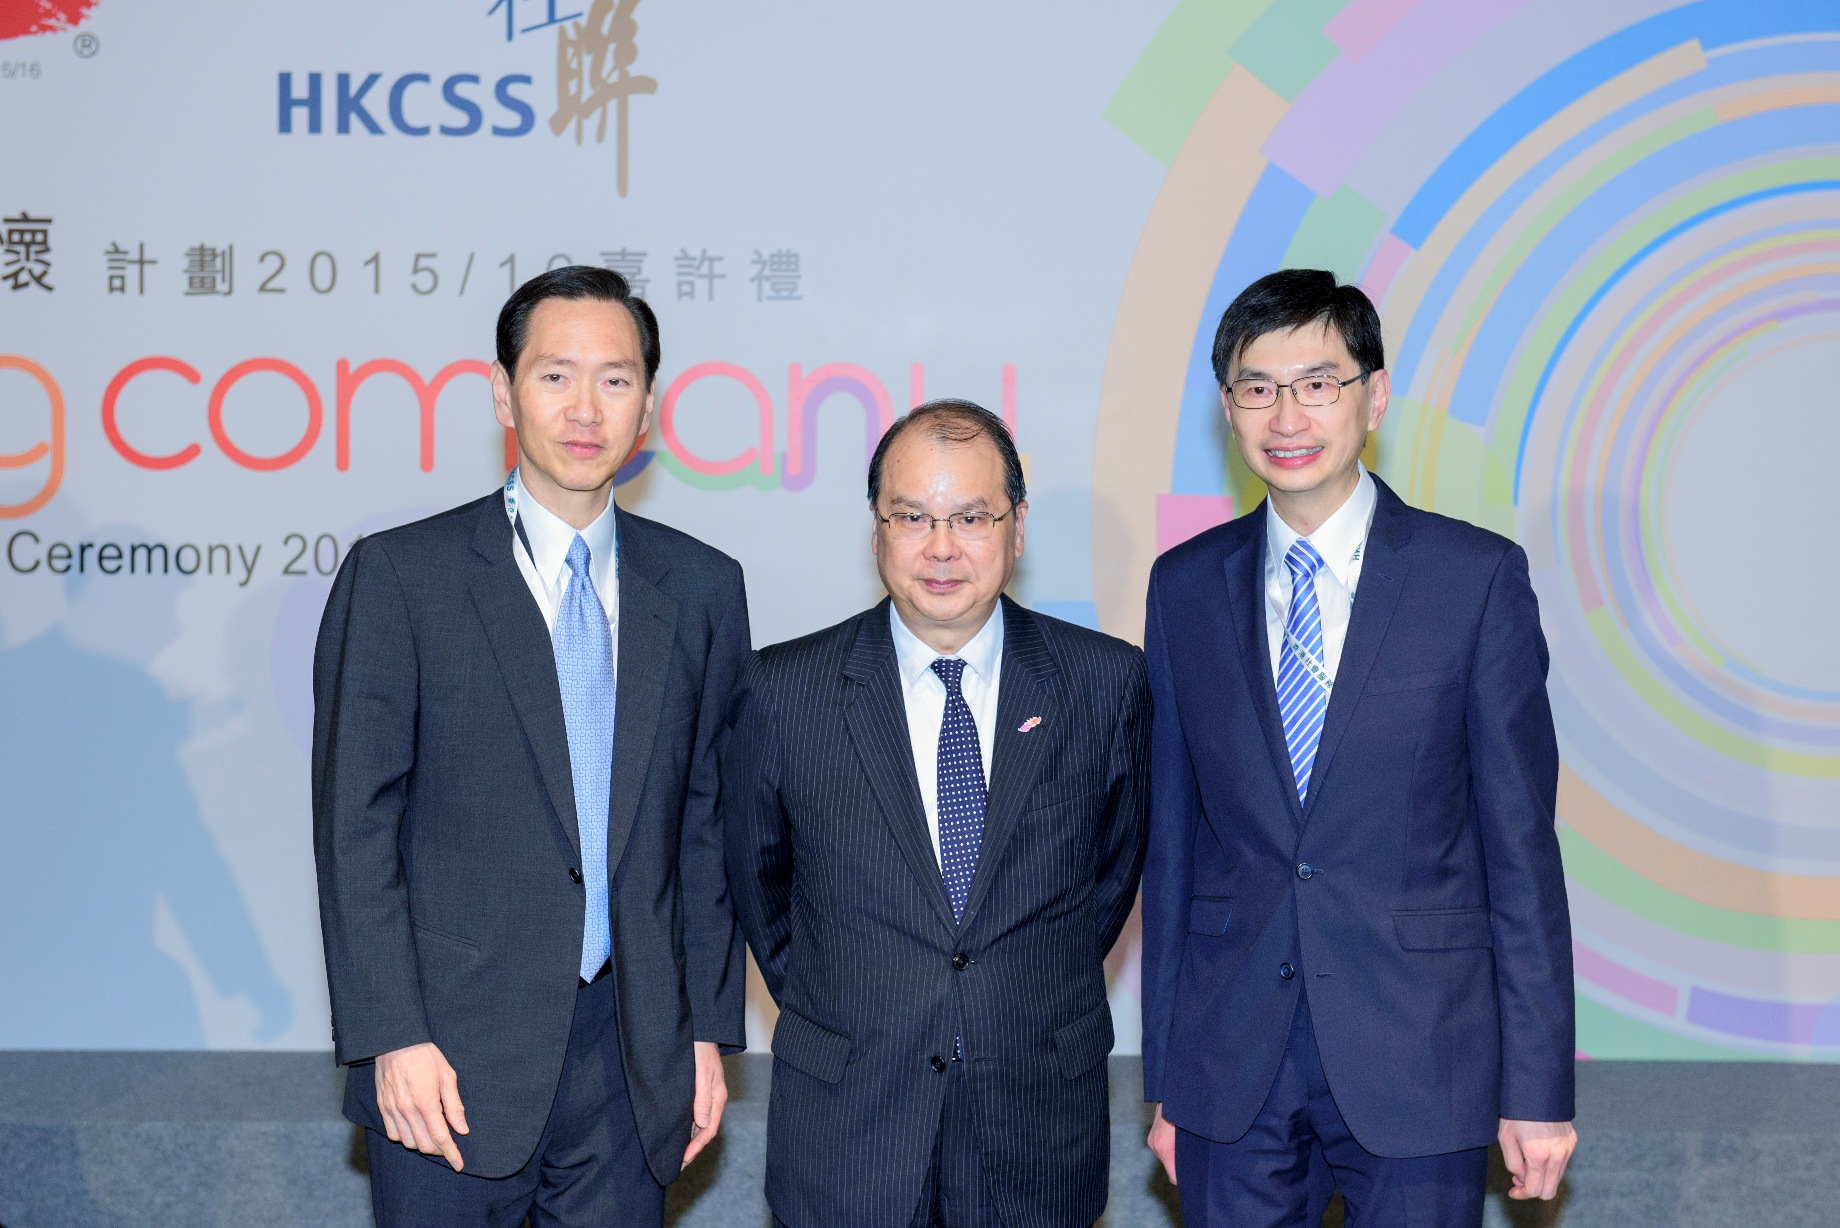 The officiating guest The Hon Carrie Lam, GBS, JP, Chief Secretary for Administration of HKSAR Government (middle), The Hon Bernard Chan, Chairperson of HKCSS (left) and Mr CHUA Hoi-wai, Chief Executive of HKCSS (right), in the recognition ceremony.